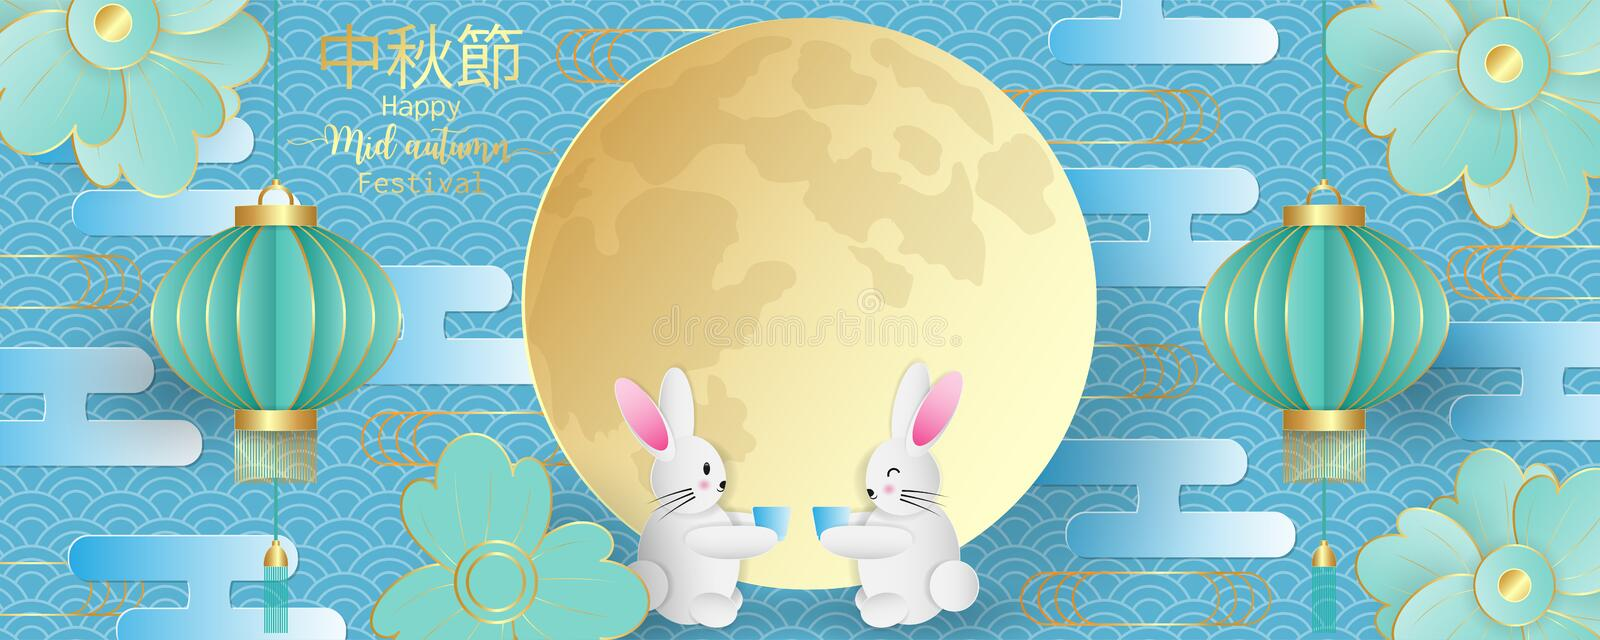 Mid autumn festival greeting card with cute rabbit, flowers and moon cake with lantern on blue background, Paper art style. stock photography